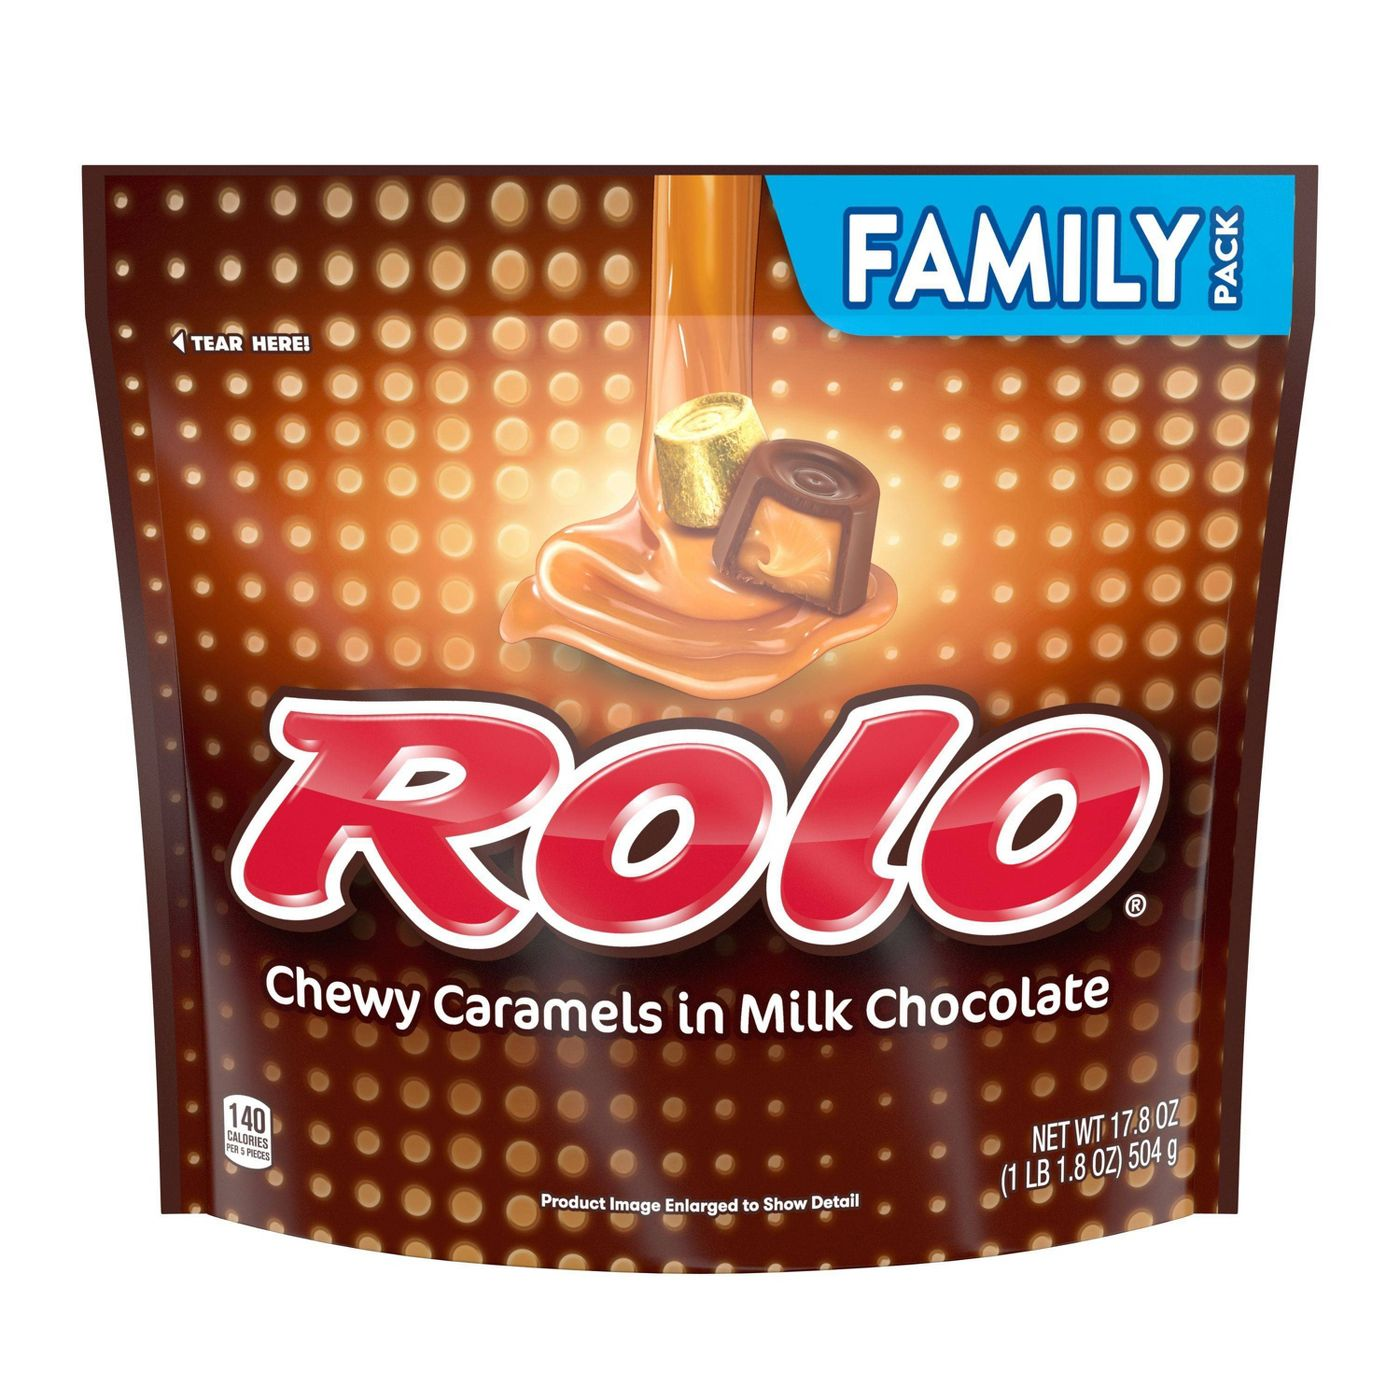 Rolo, Milk Chocolate and Caramel Candy, Family Size, 17.8oz